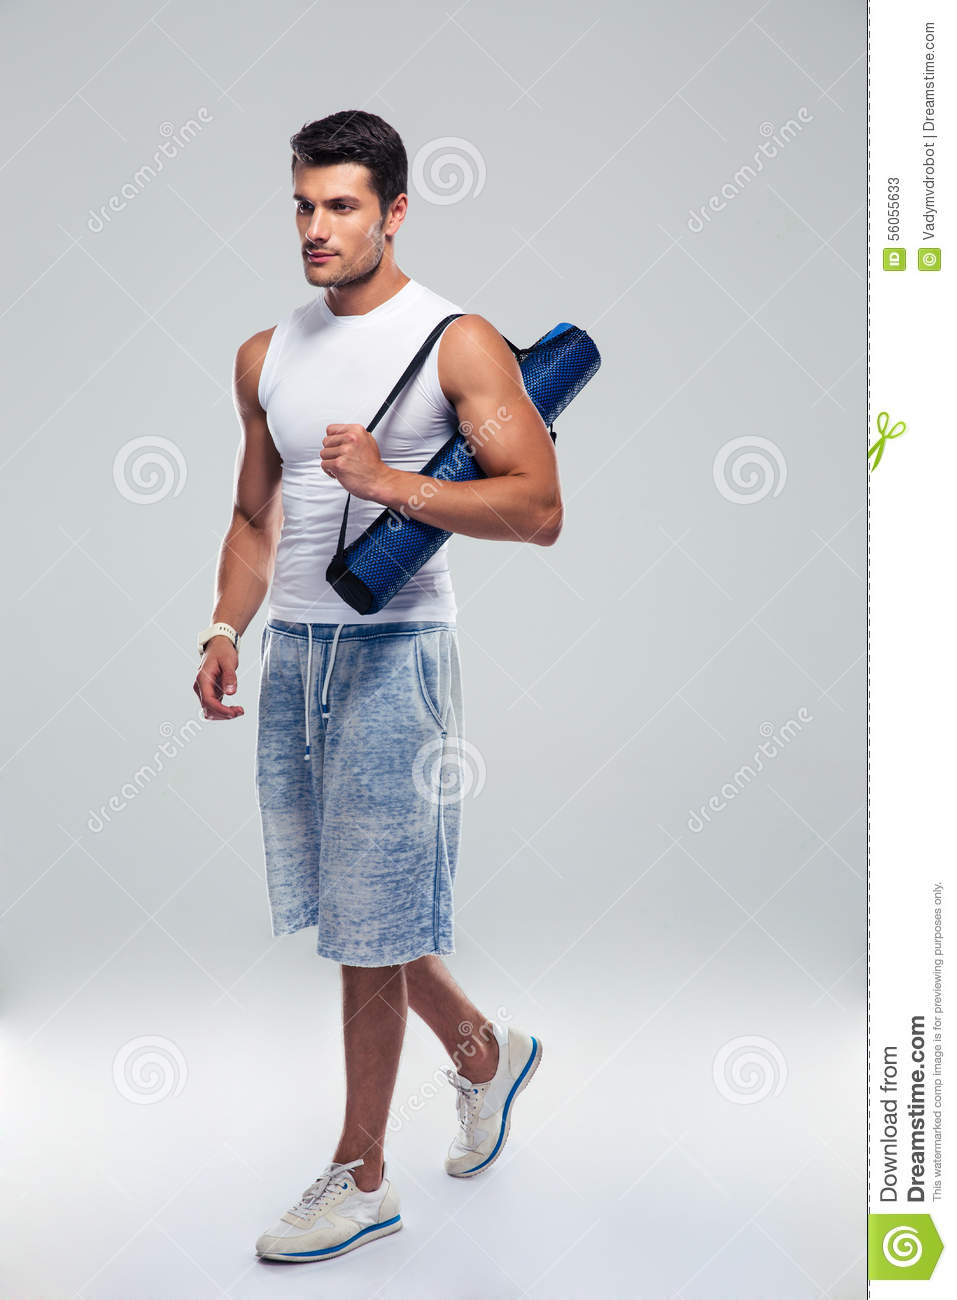 Fitness Man Walking With Yoga Mat Stock Image Image Of